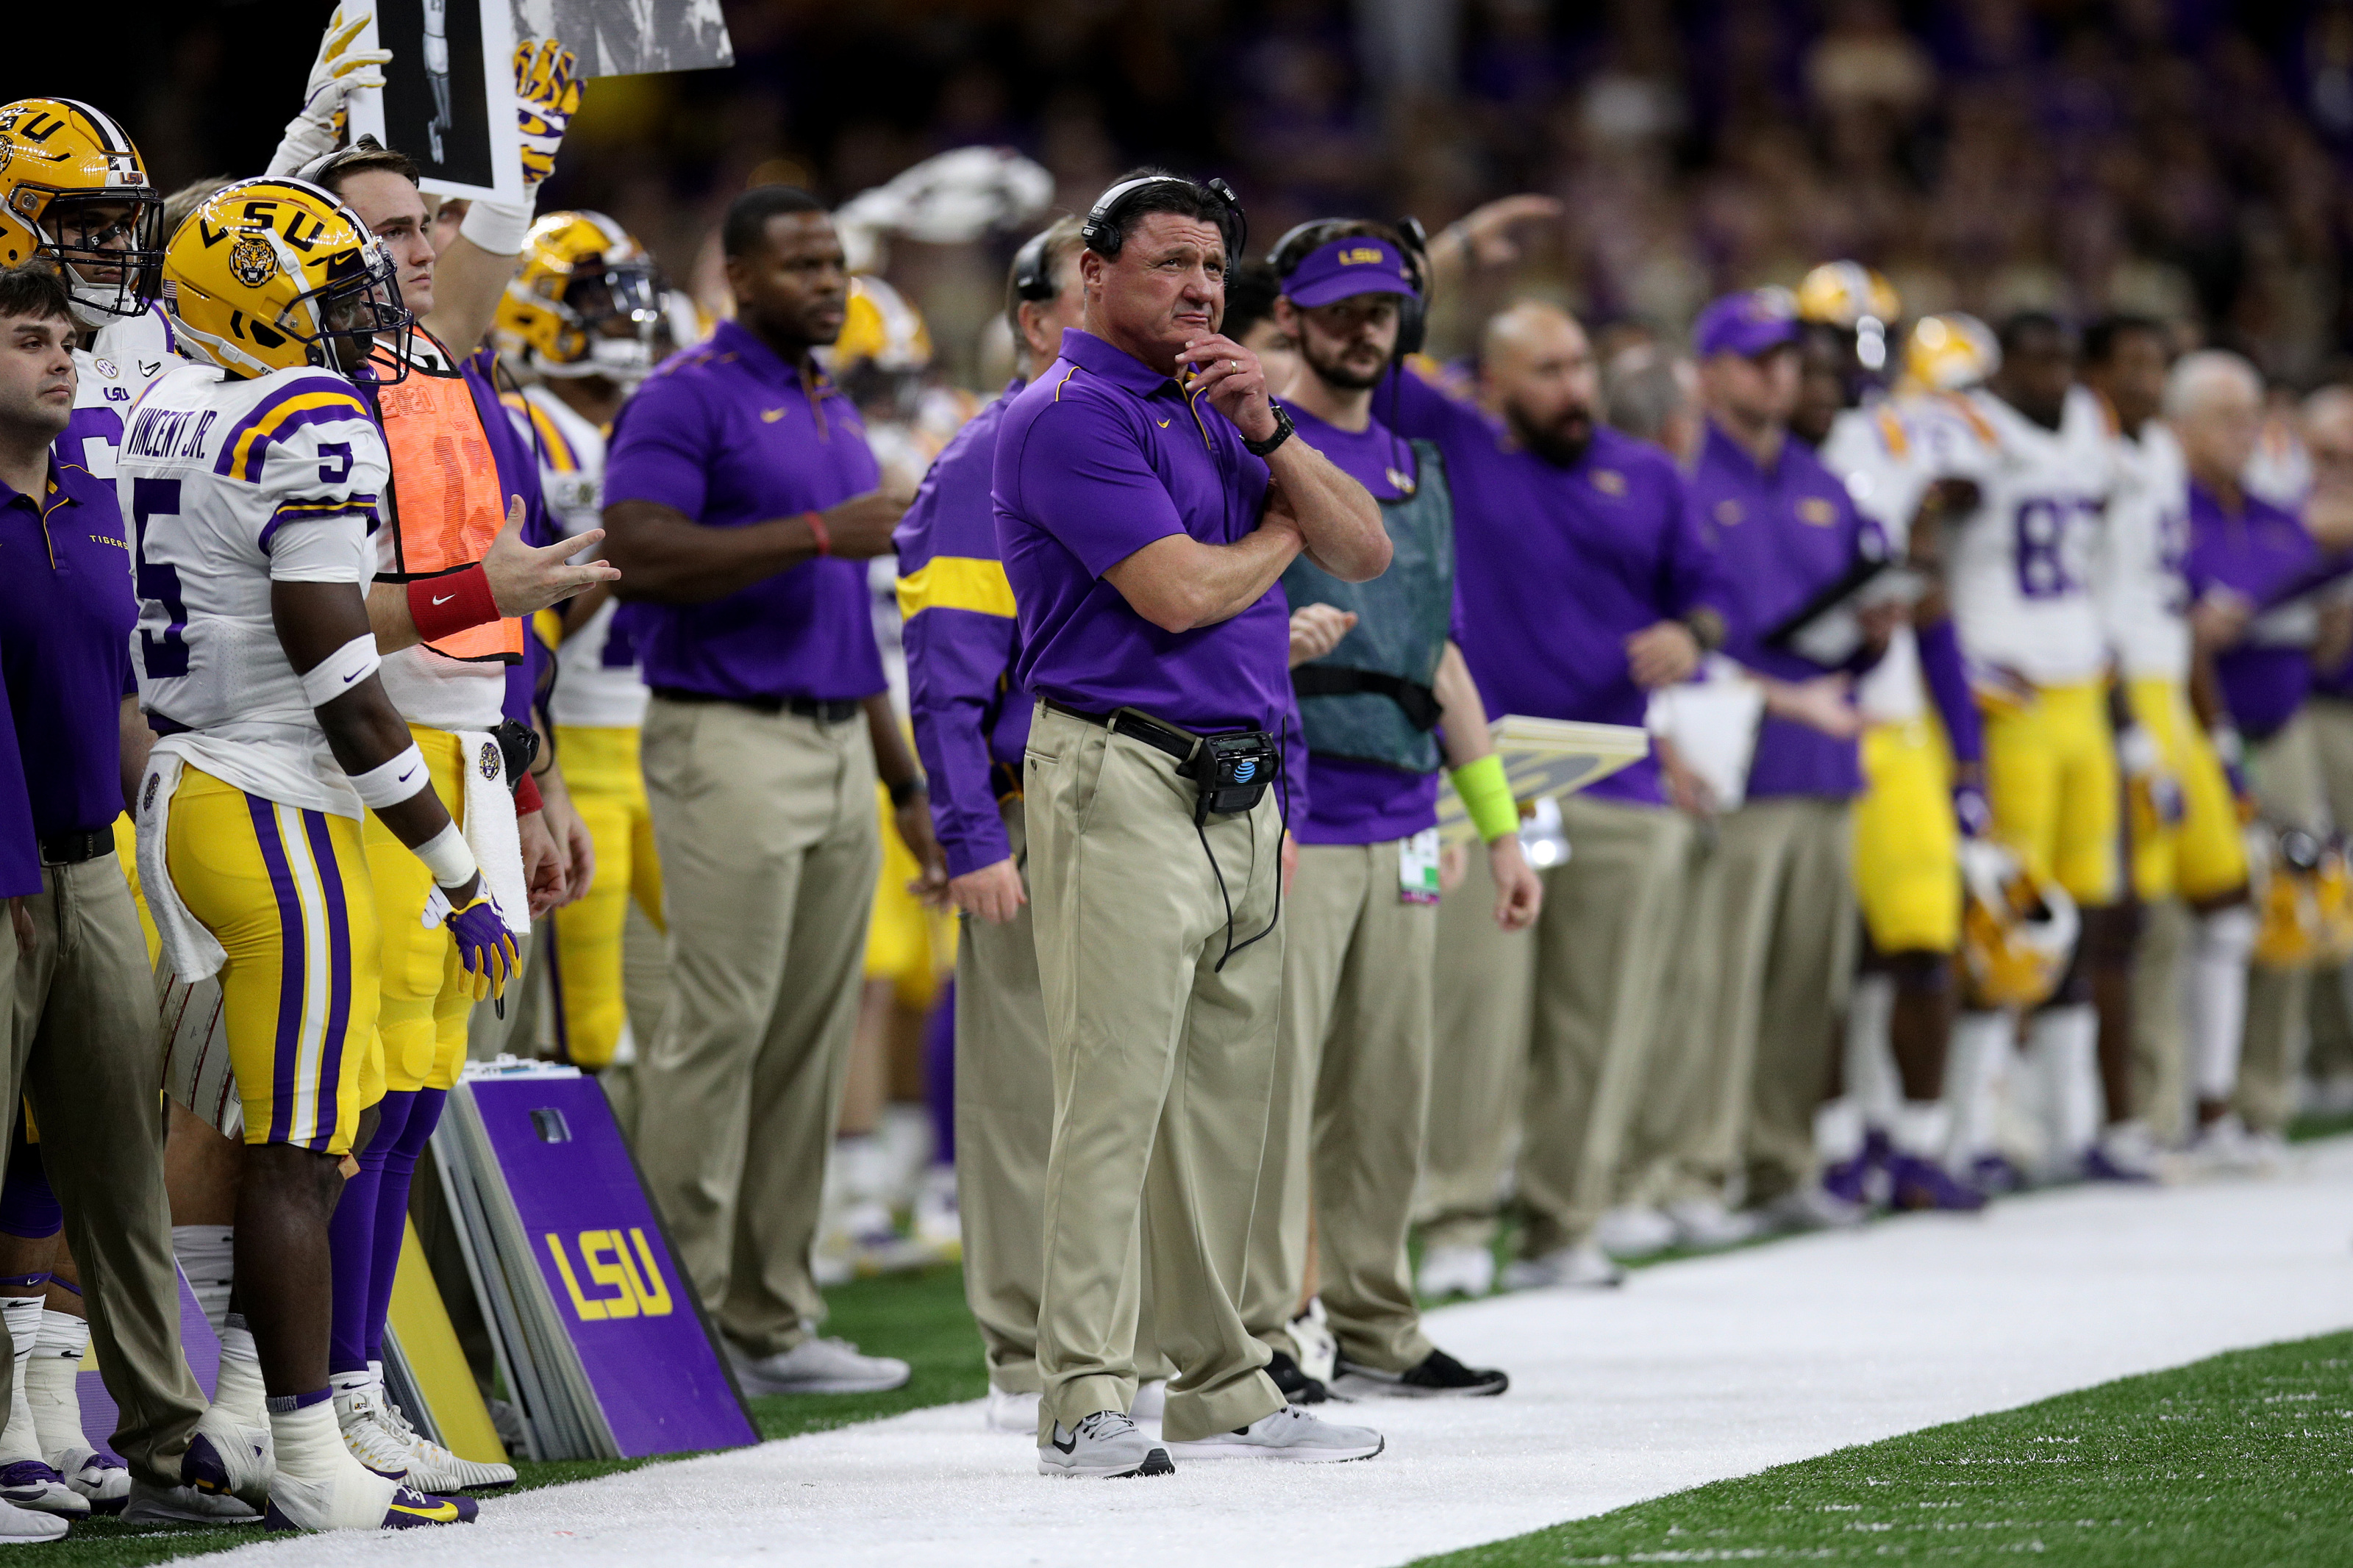 2021 4-star RB is a must-get for LSU Football